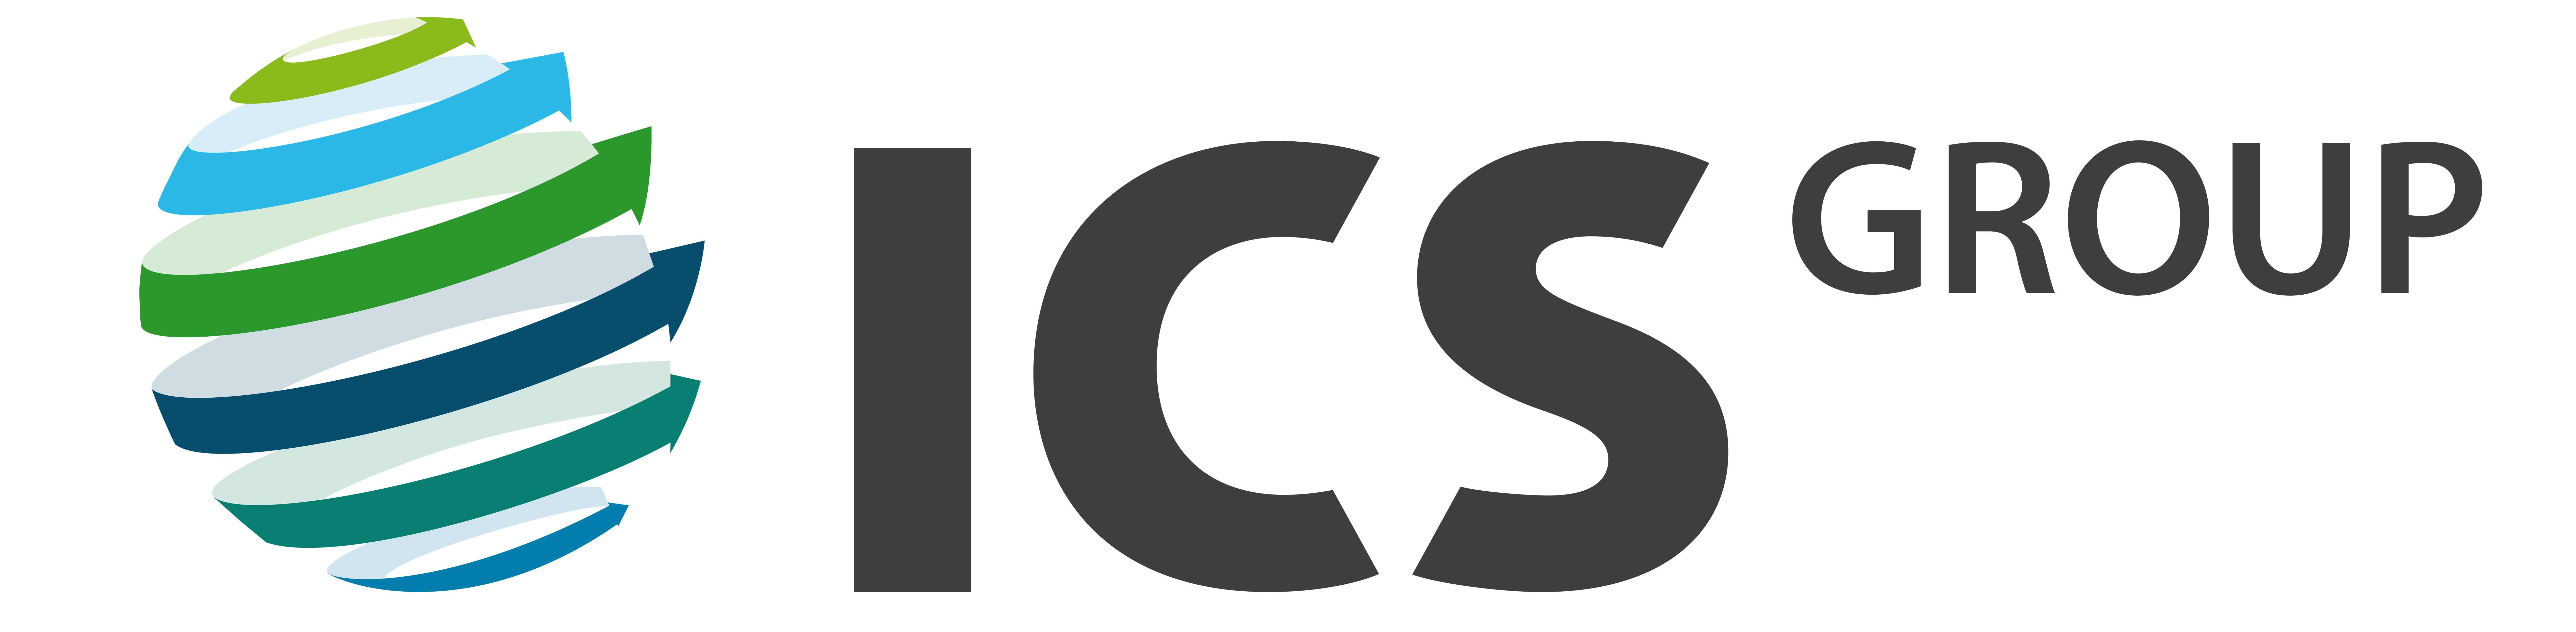 File:ICS Logo.png.